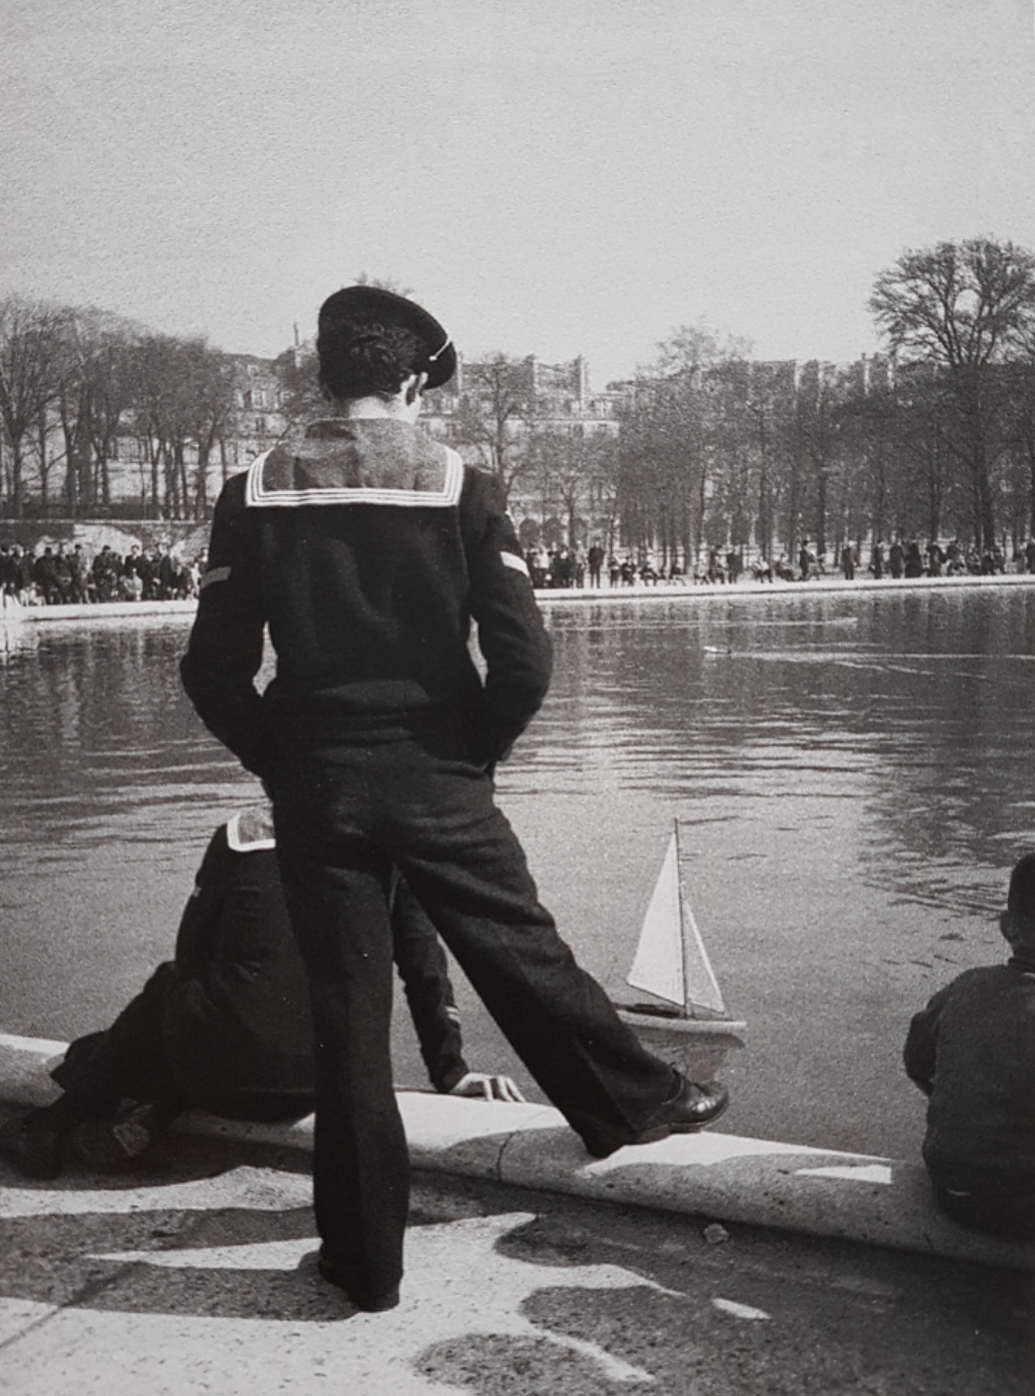 Photographie de Paris par Francois Lartigue